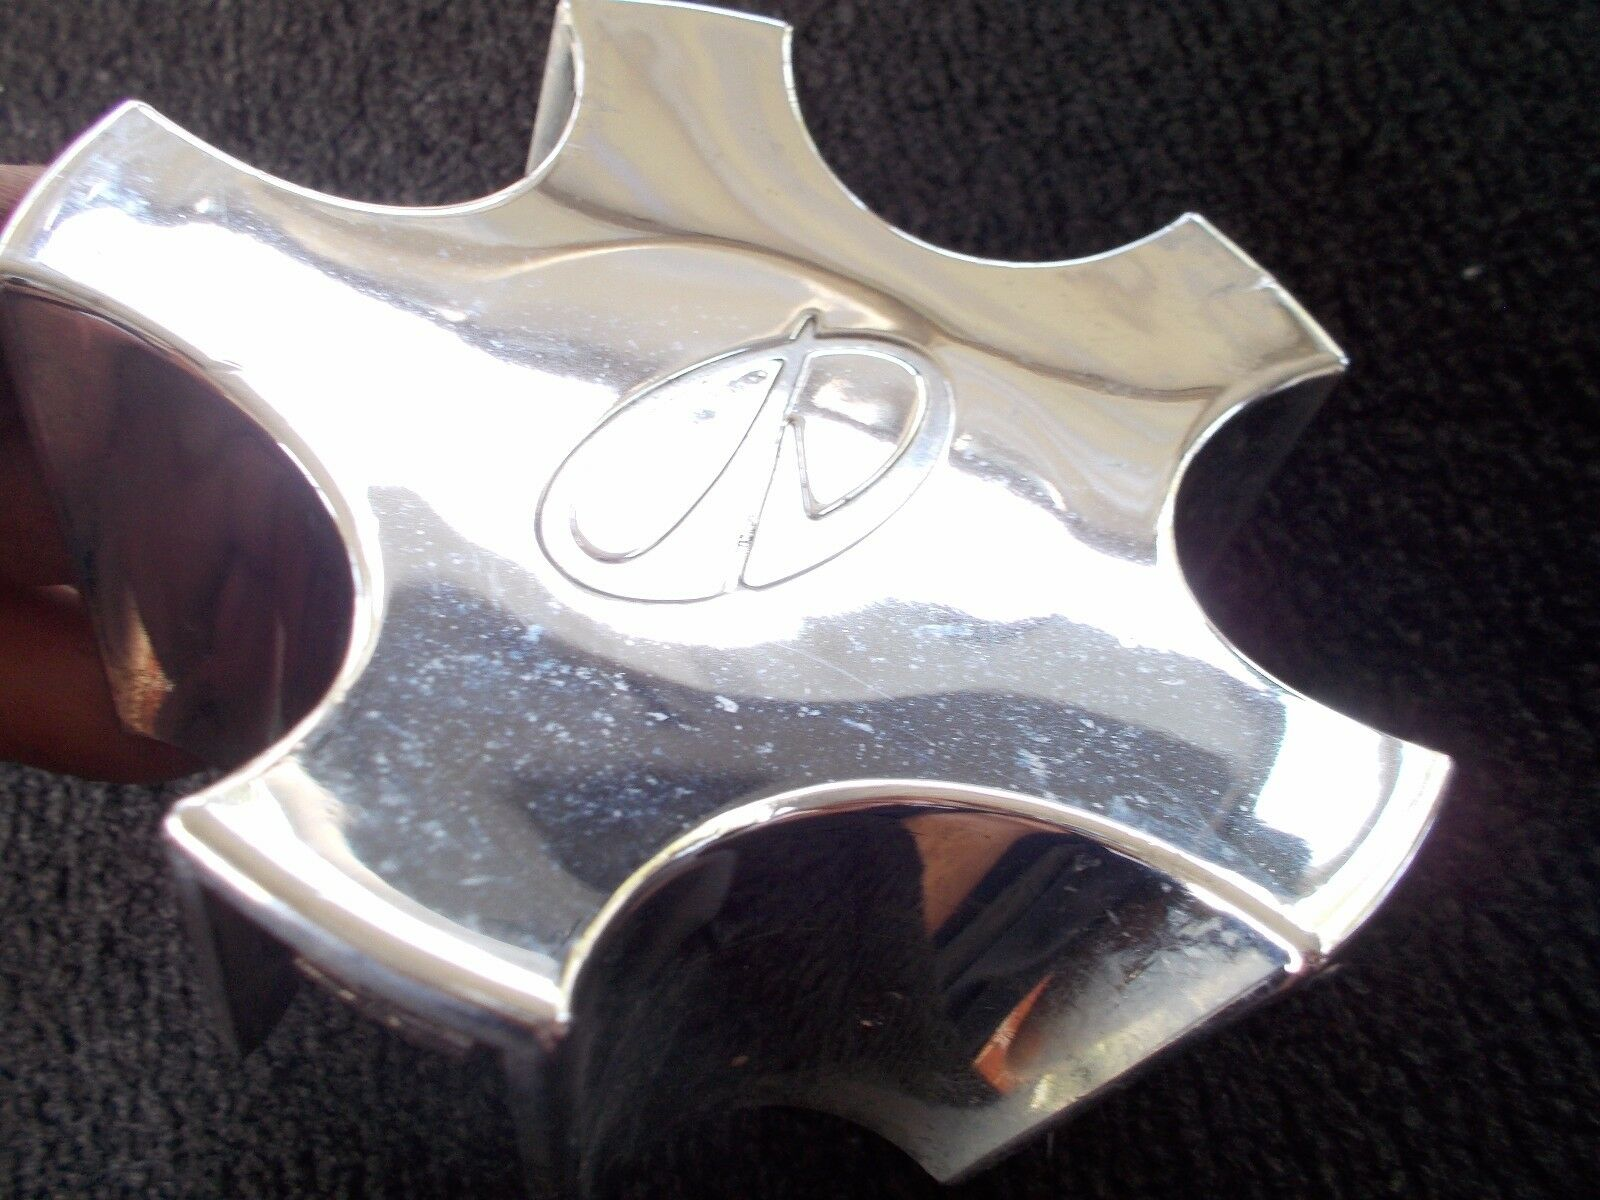 1 BUYING 1998-03 Olds Intrigue Silhouette Center cap Hubcap USED IN GOOD SHAPE